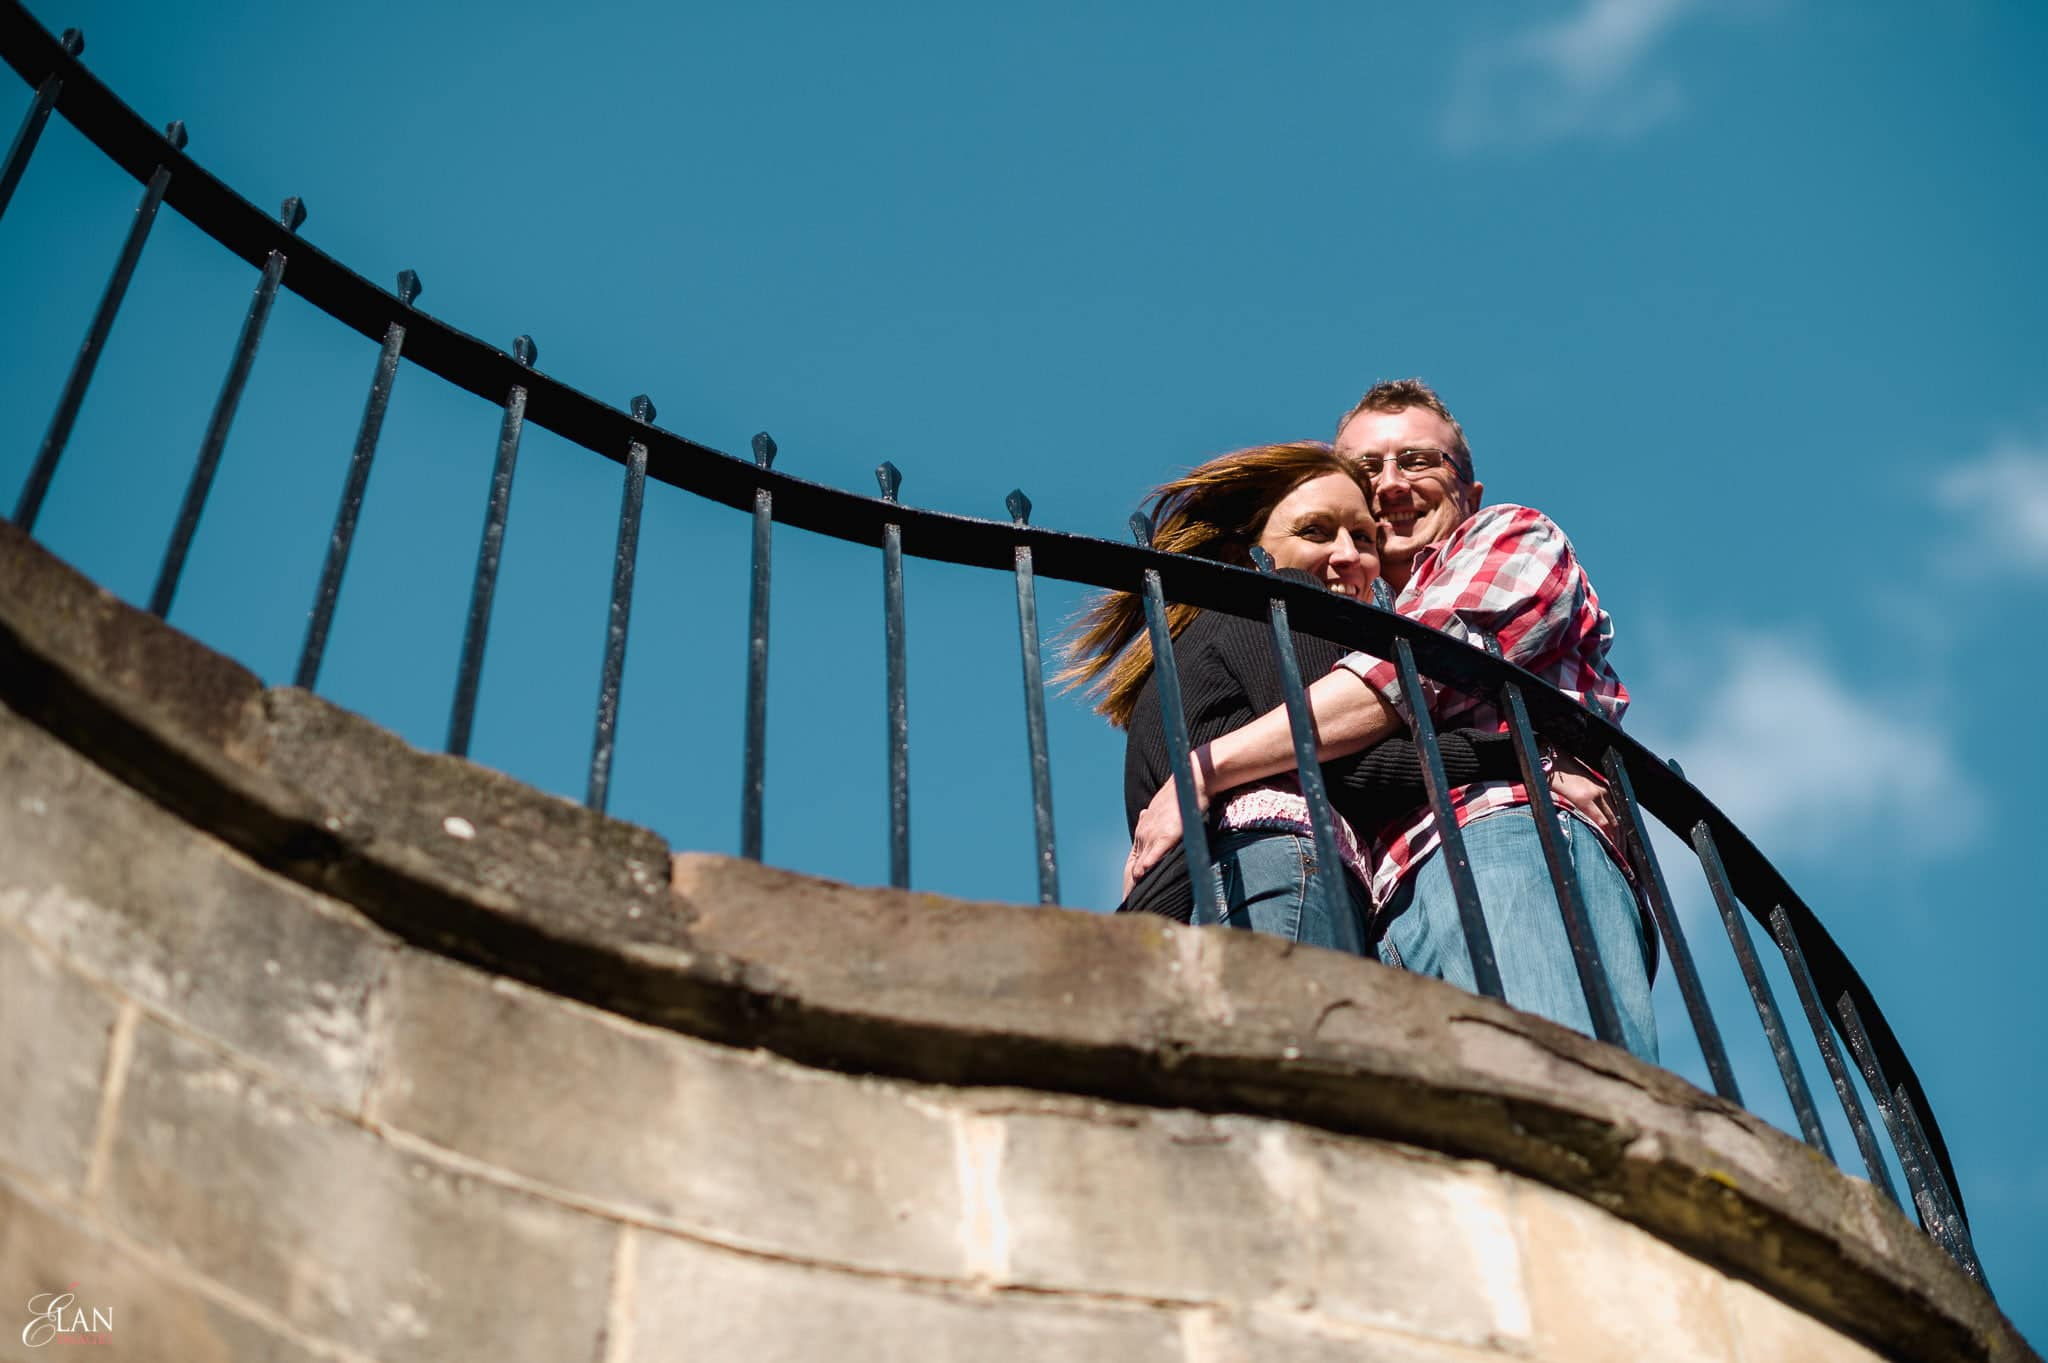 Engagement Photo Shoot in Clifton Village 13